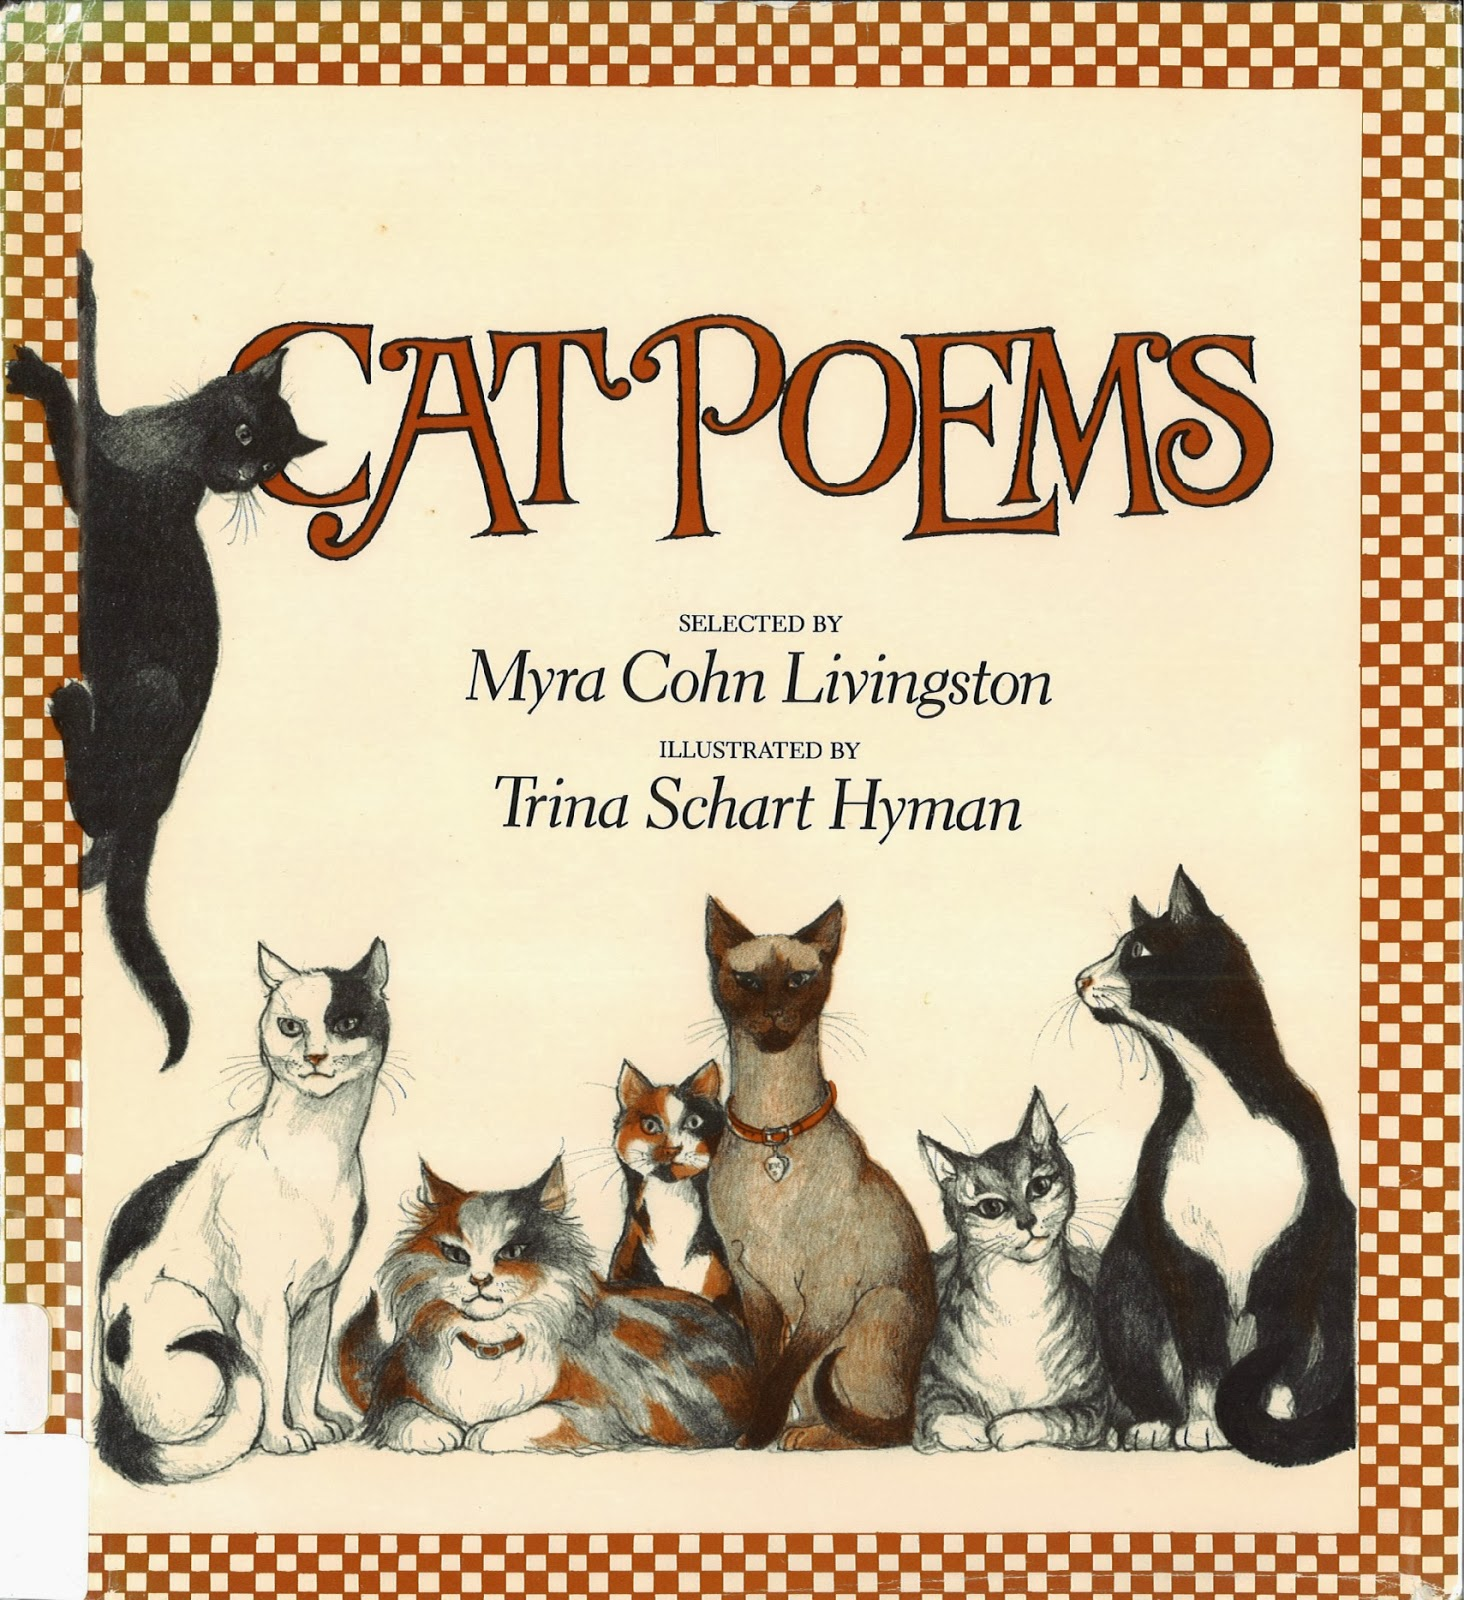 Its friday cat pictures it s friday so it s time for - It S Been A While Since I Shared A Cat Poem With The Poetry Friday Readers It Is Time To Remedy That For Today I M Sharing A Exceedingly Relevant Poem For